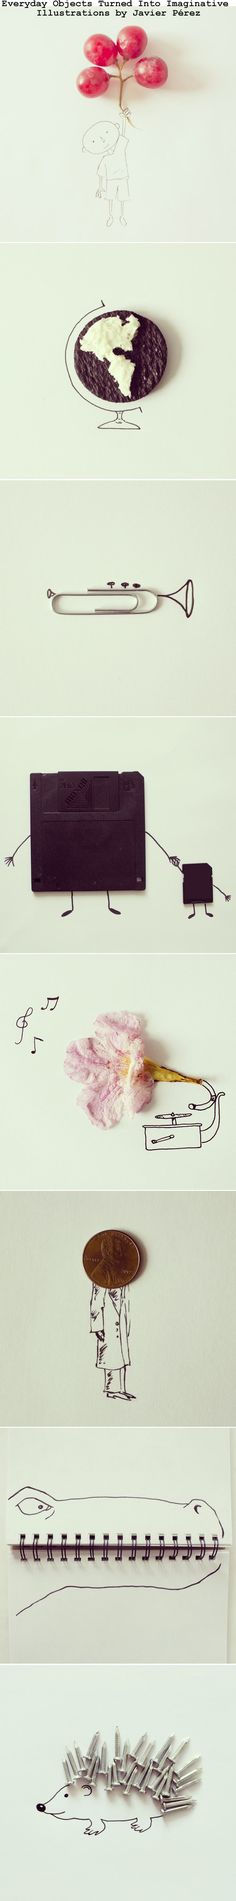 Everyday Objects Turned Into Imaginative Illustrations-I wish I were this creative with everyday objects